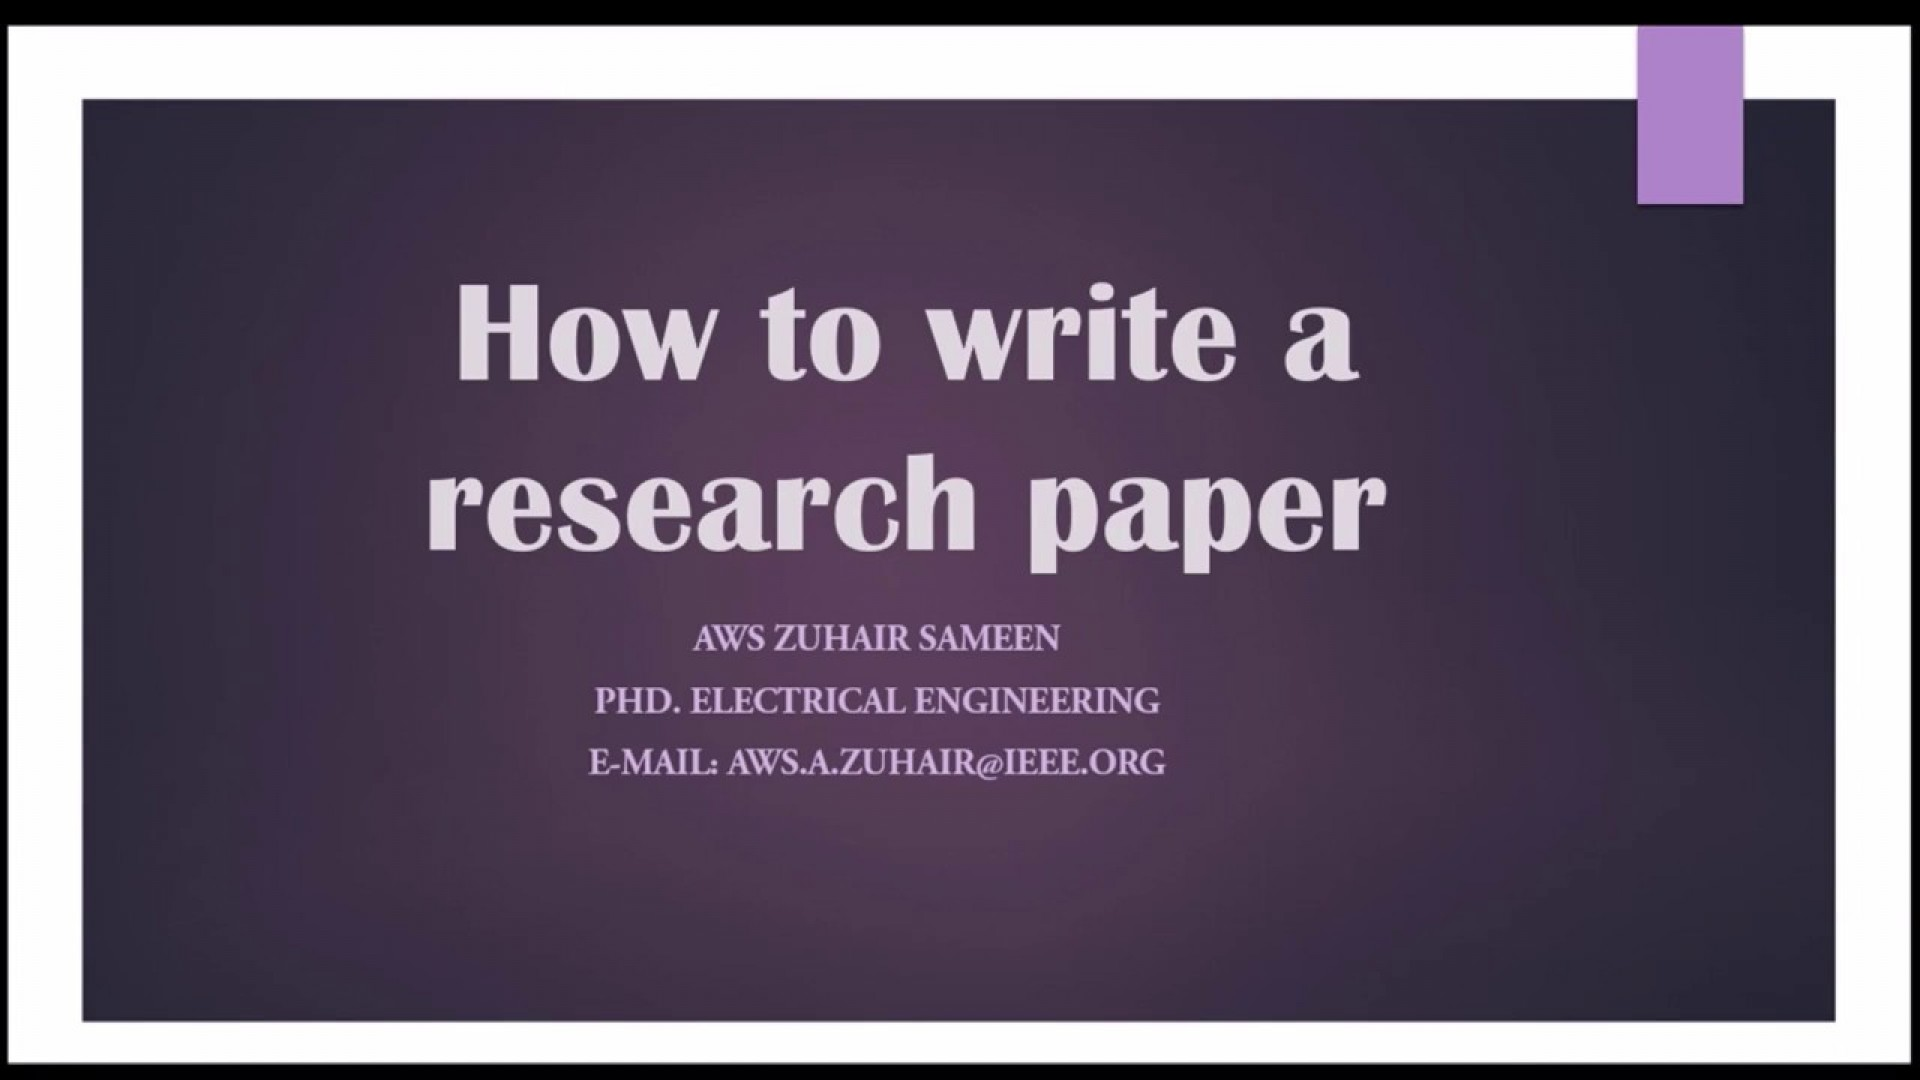 016 Research Paper How To Write Conclusion For Fearsome A Literary Science In Example 1920